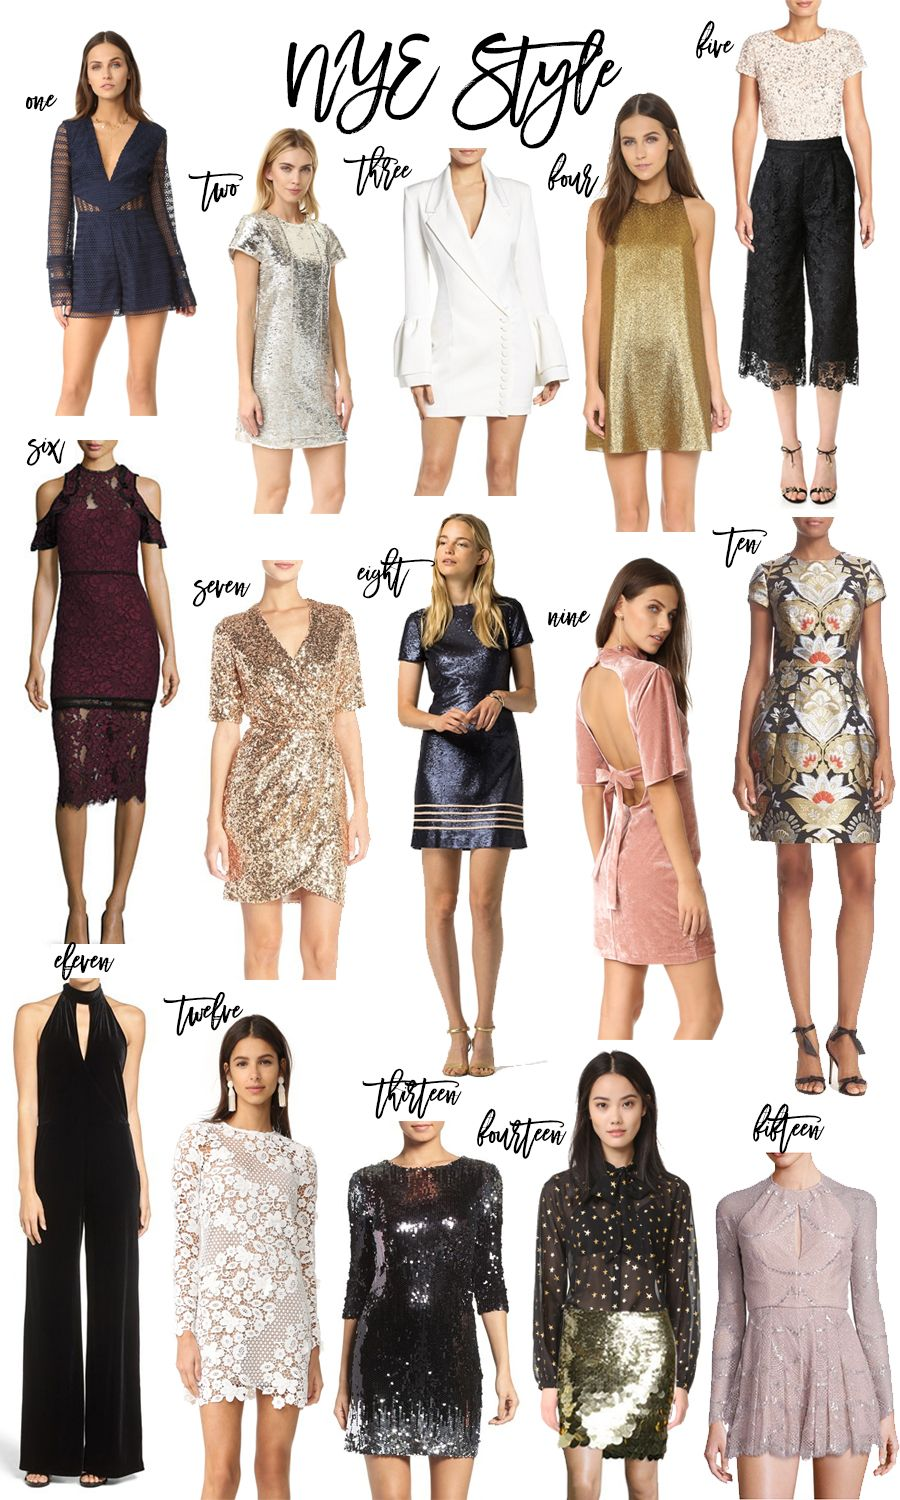 15 Fabulous NYE Outfits | Nye outfits, Edgy outfits ...